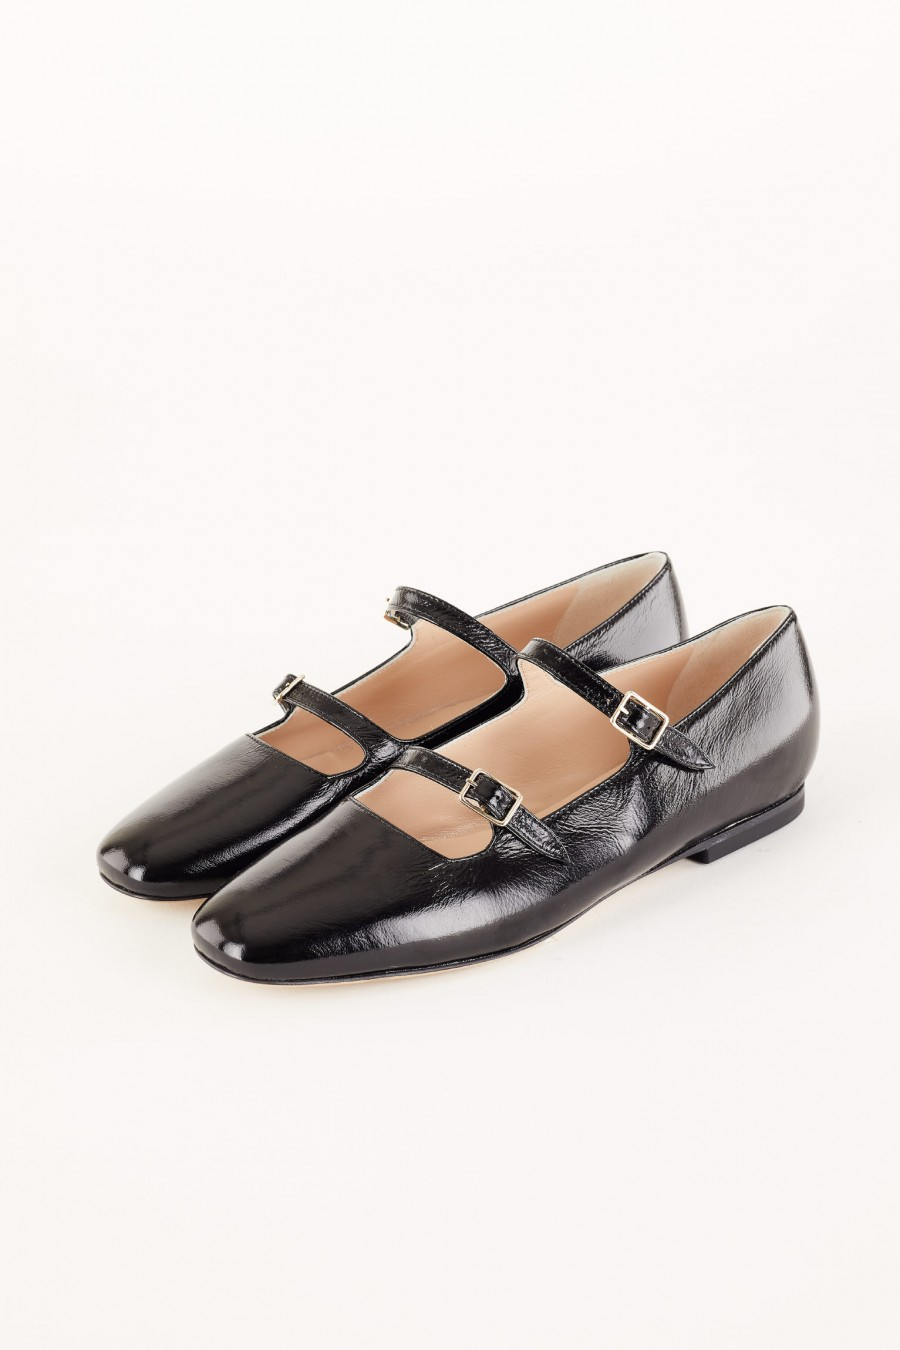 elegant shoes for women made in italy